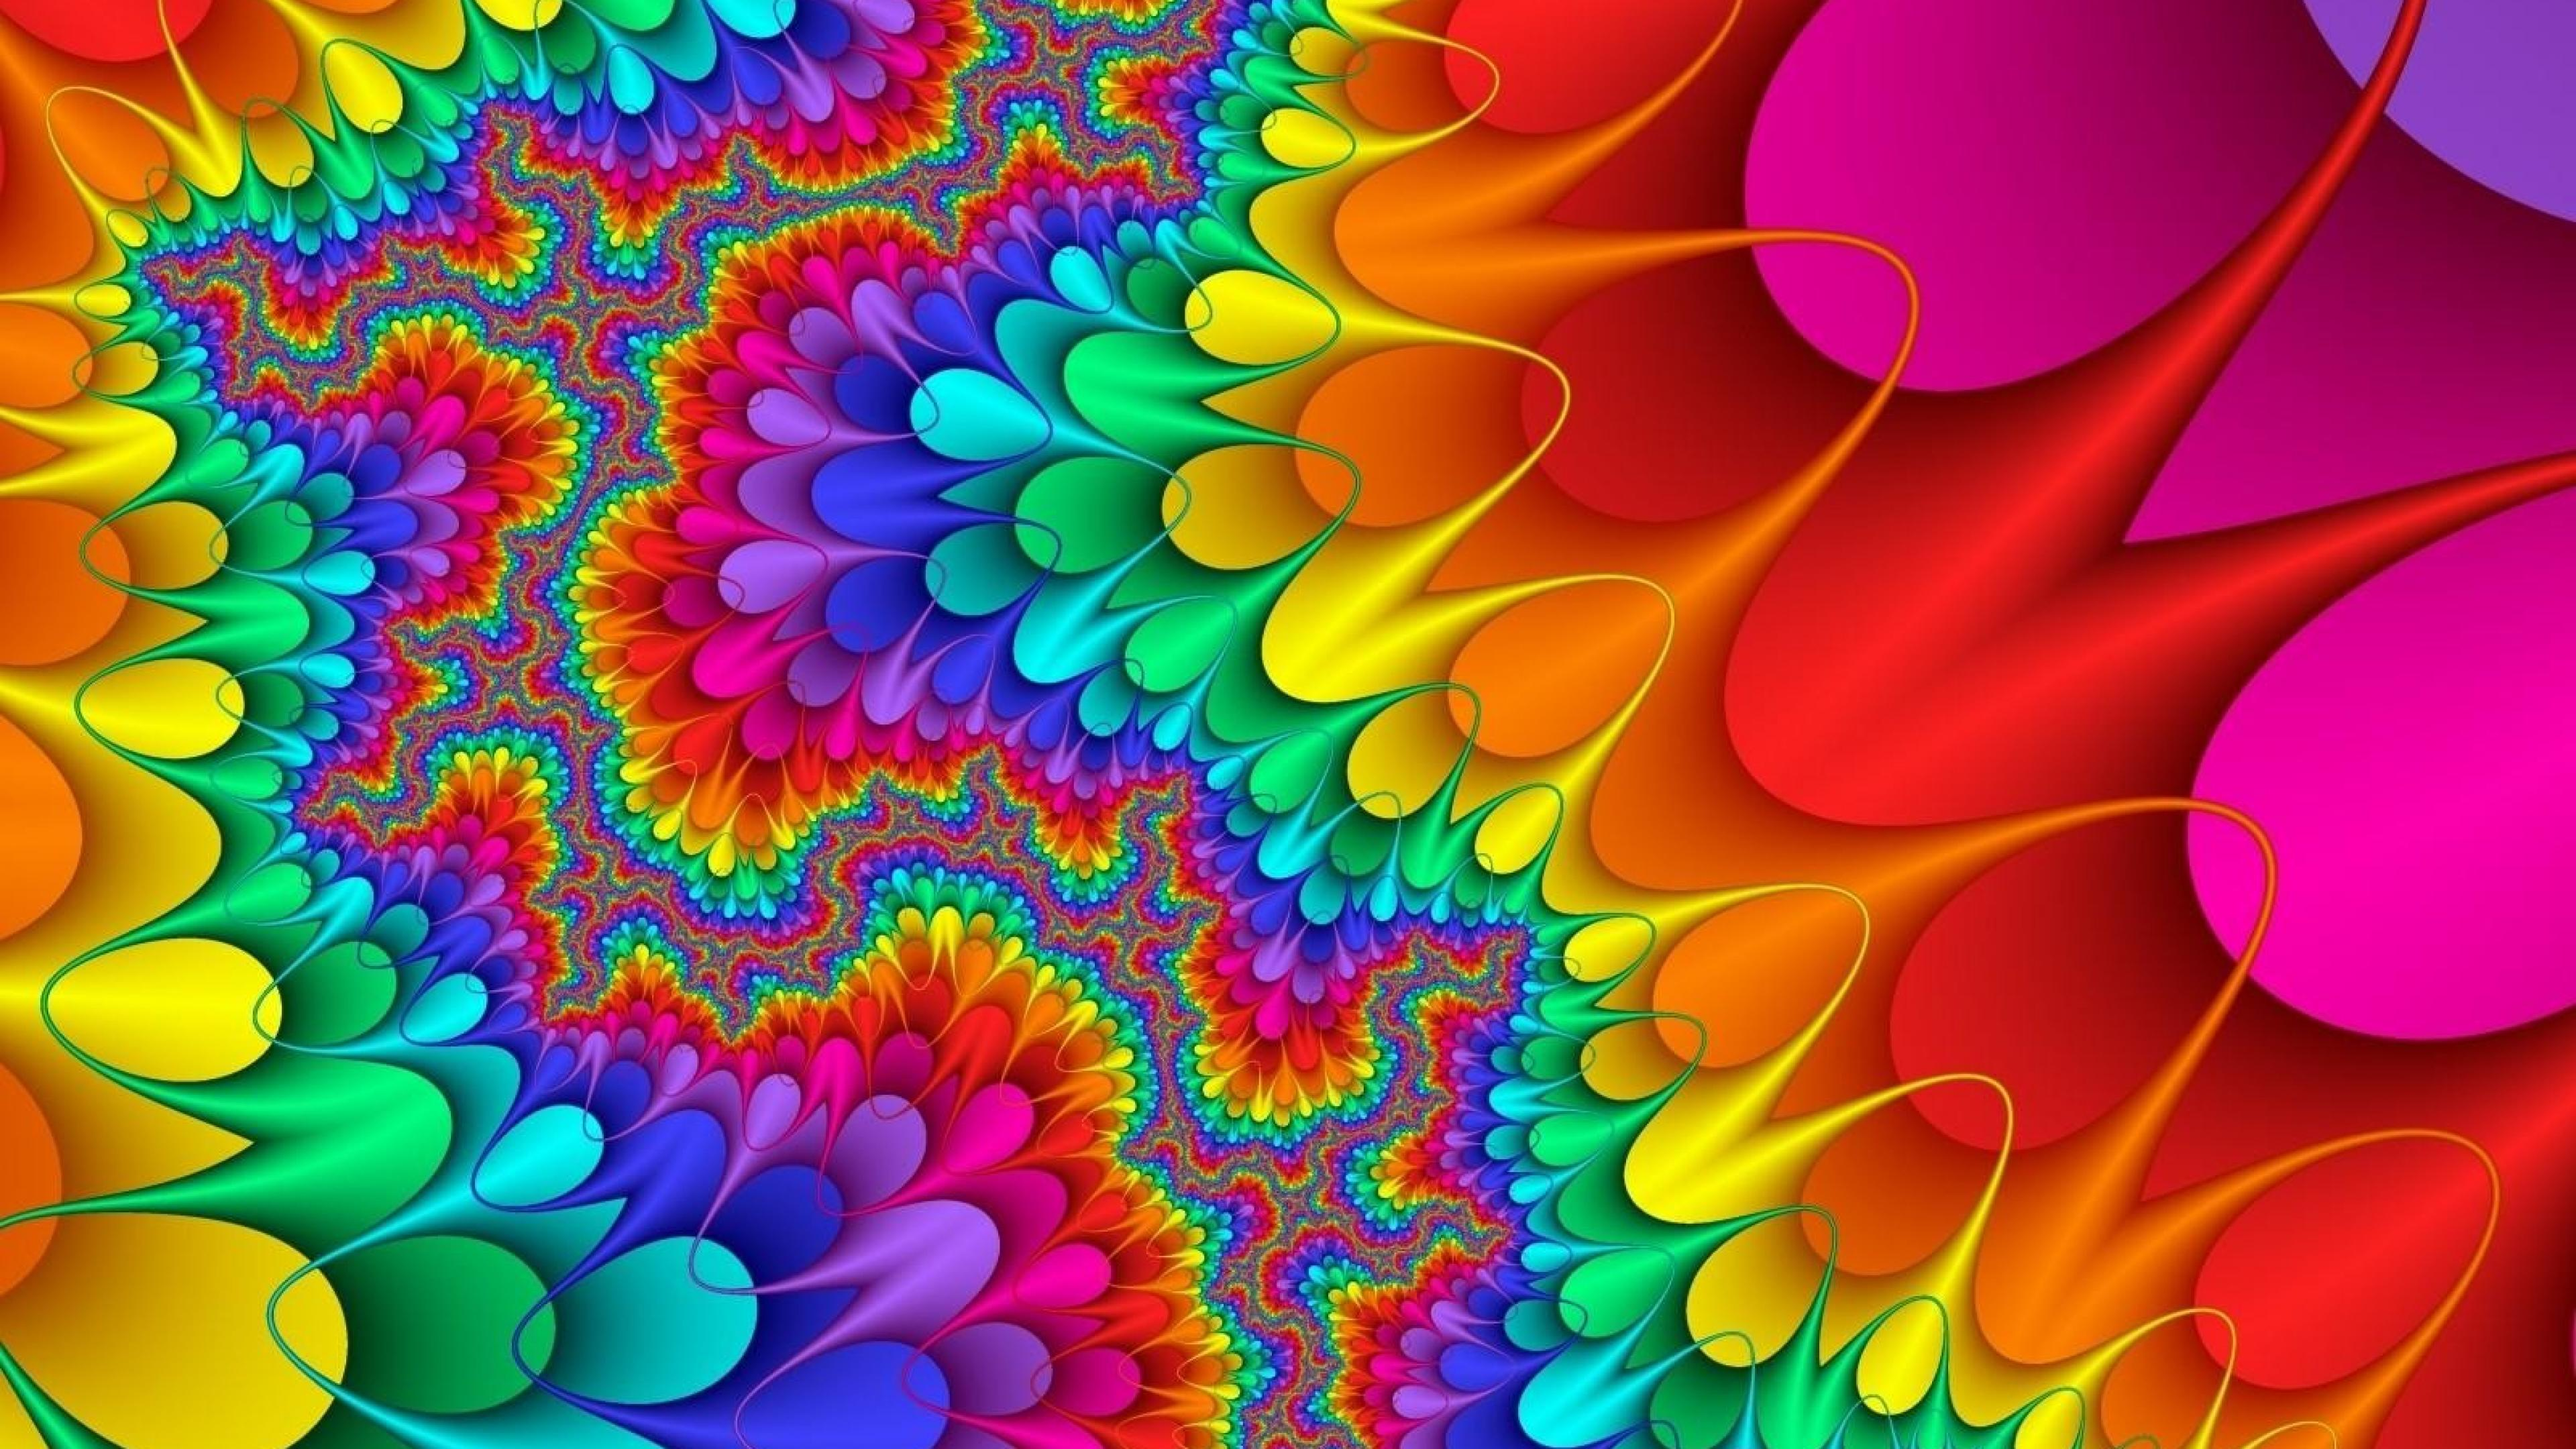 wallpaper.wiki-abstract-colorful-widescreen-4k-resolution-image-pic